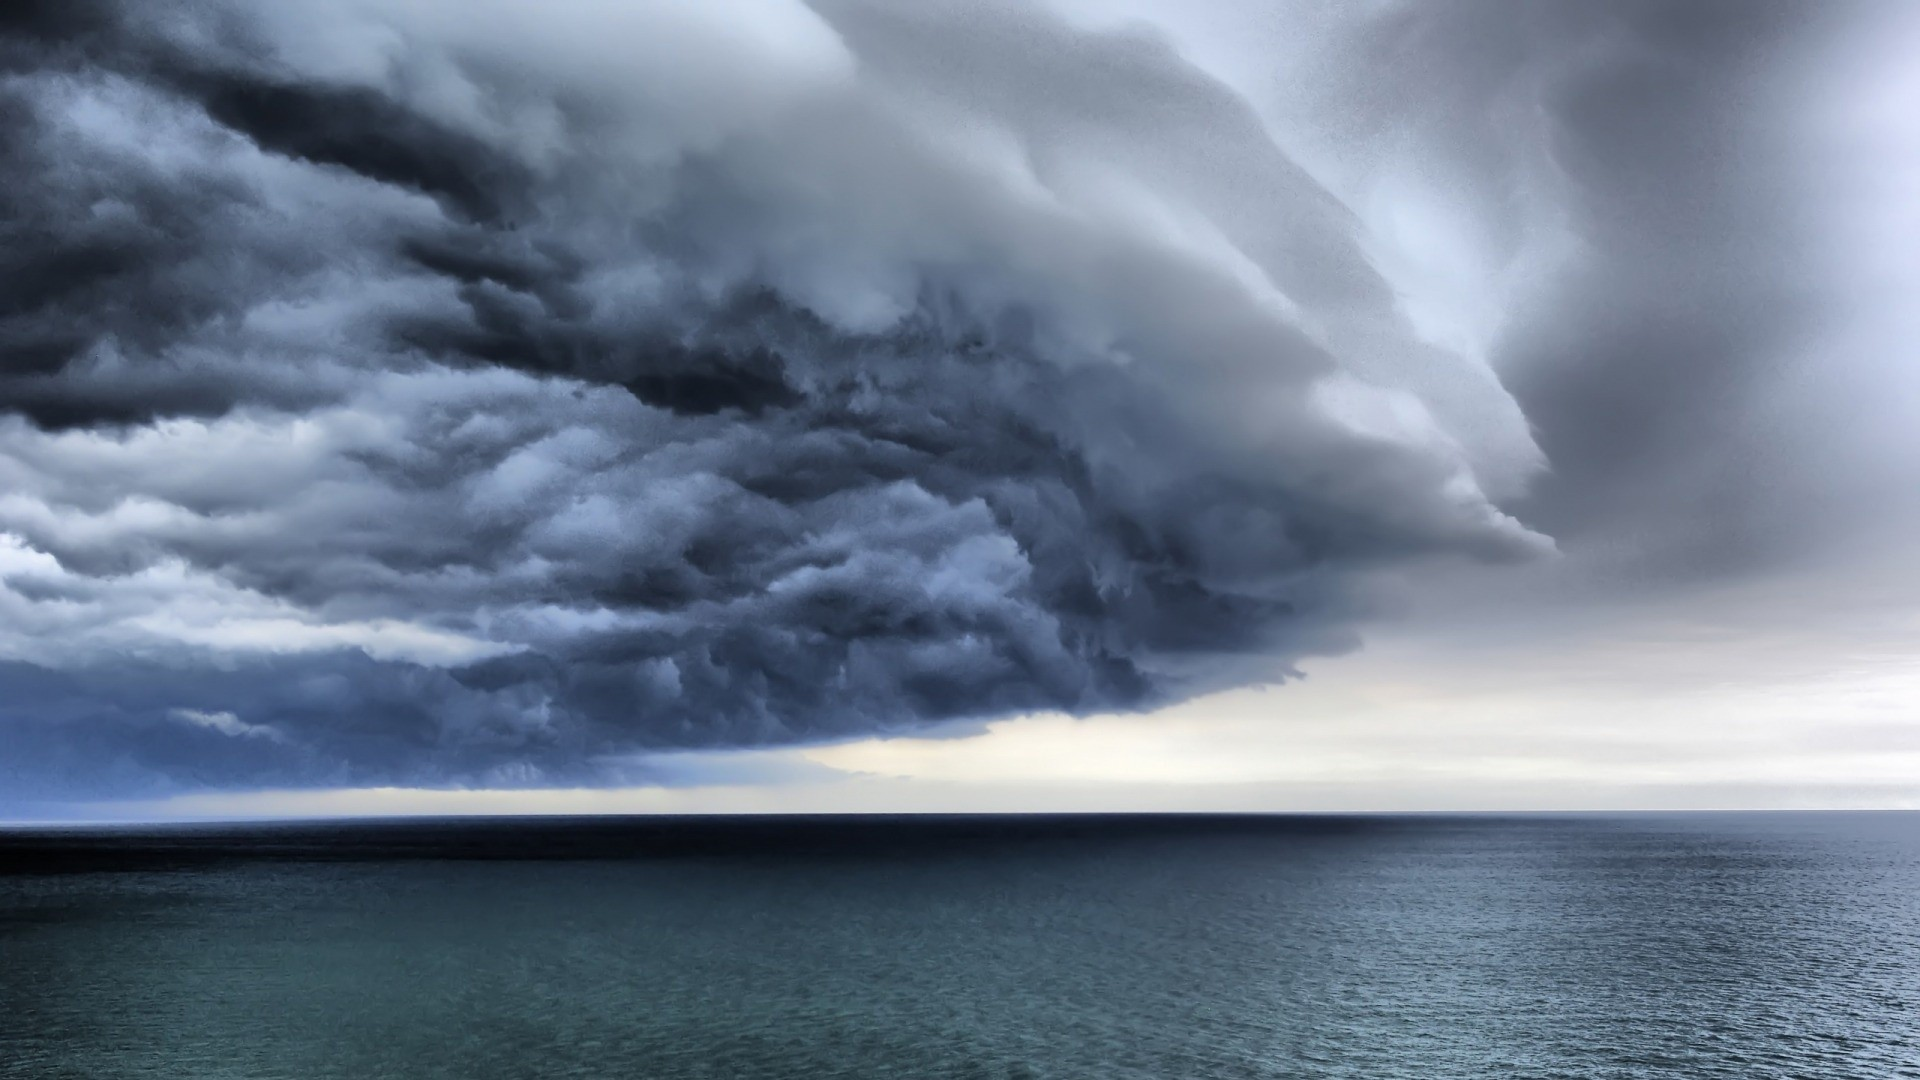 ocean-photos-screensavers-wallpapers-storm-191238.jpg